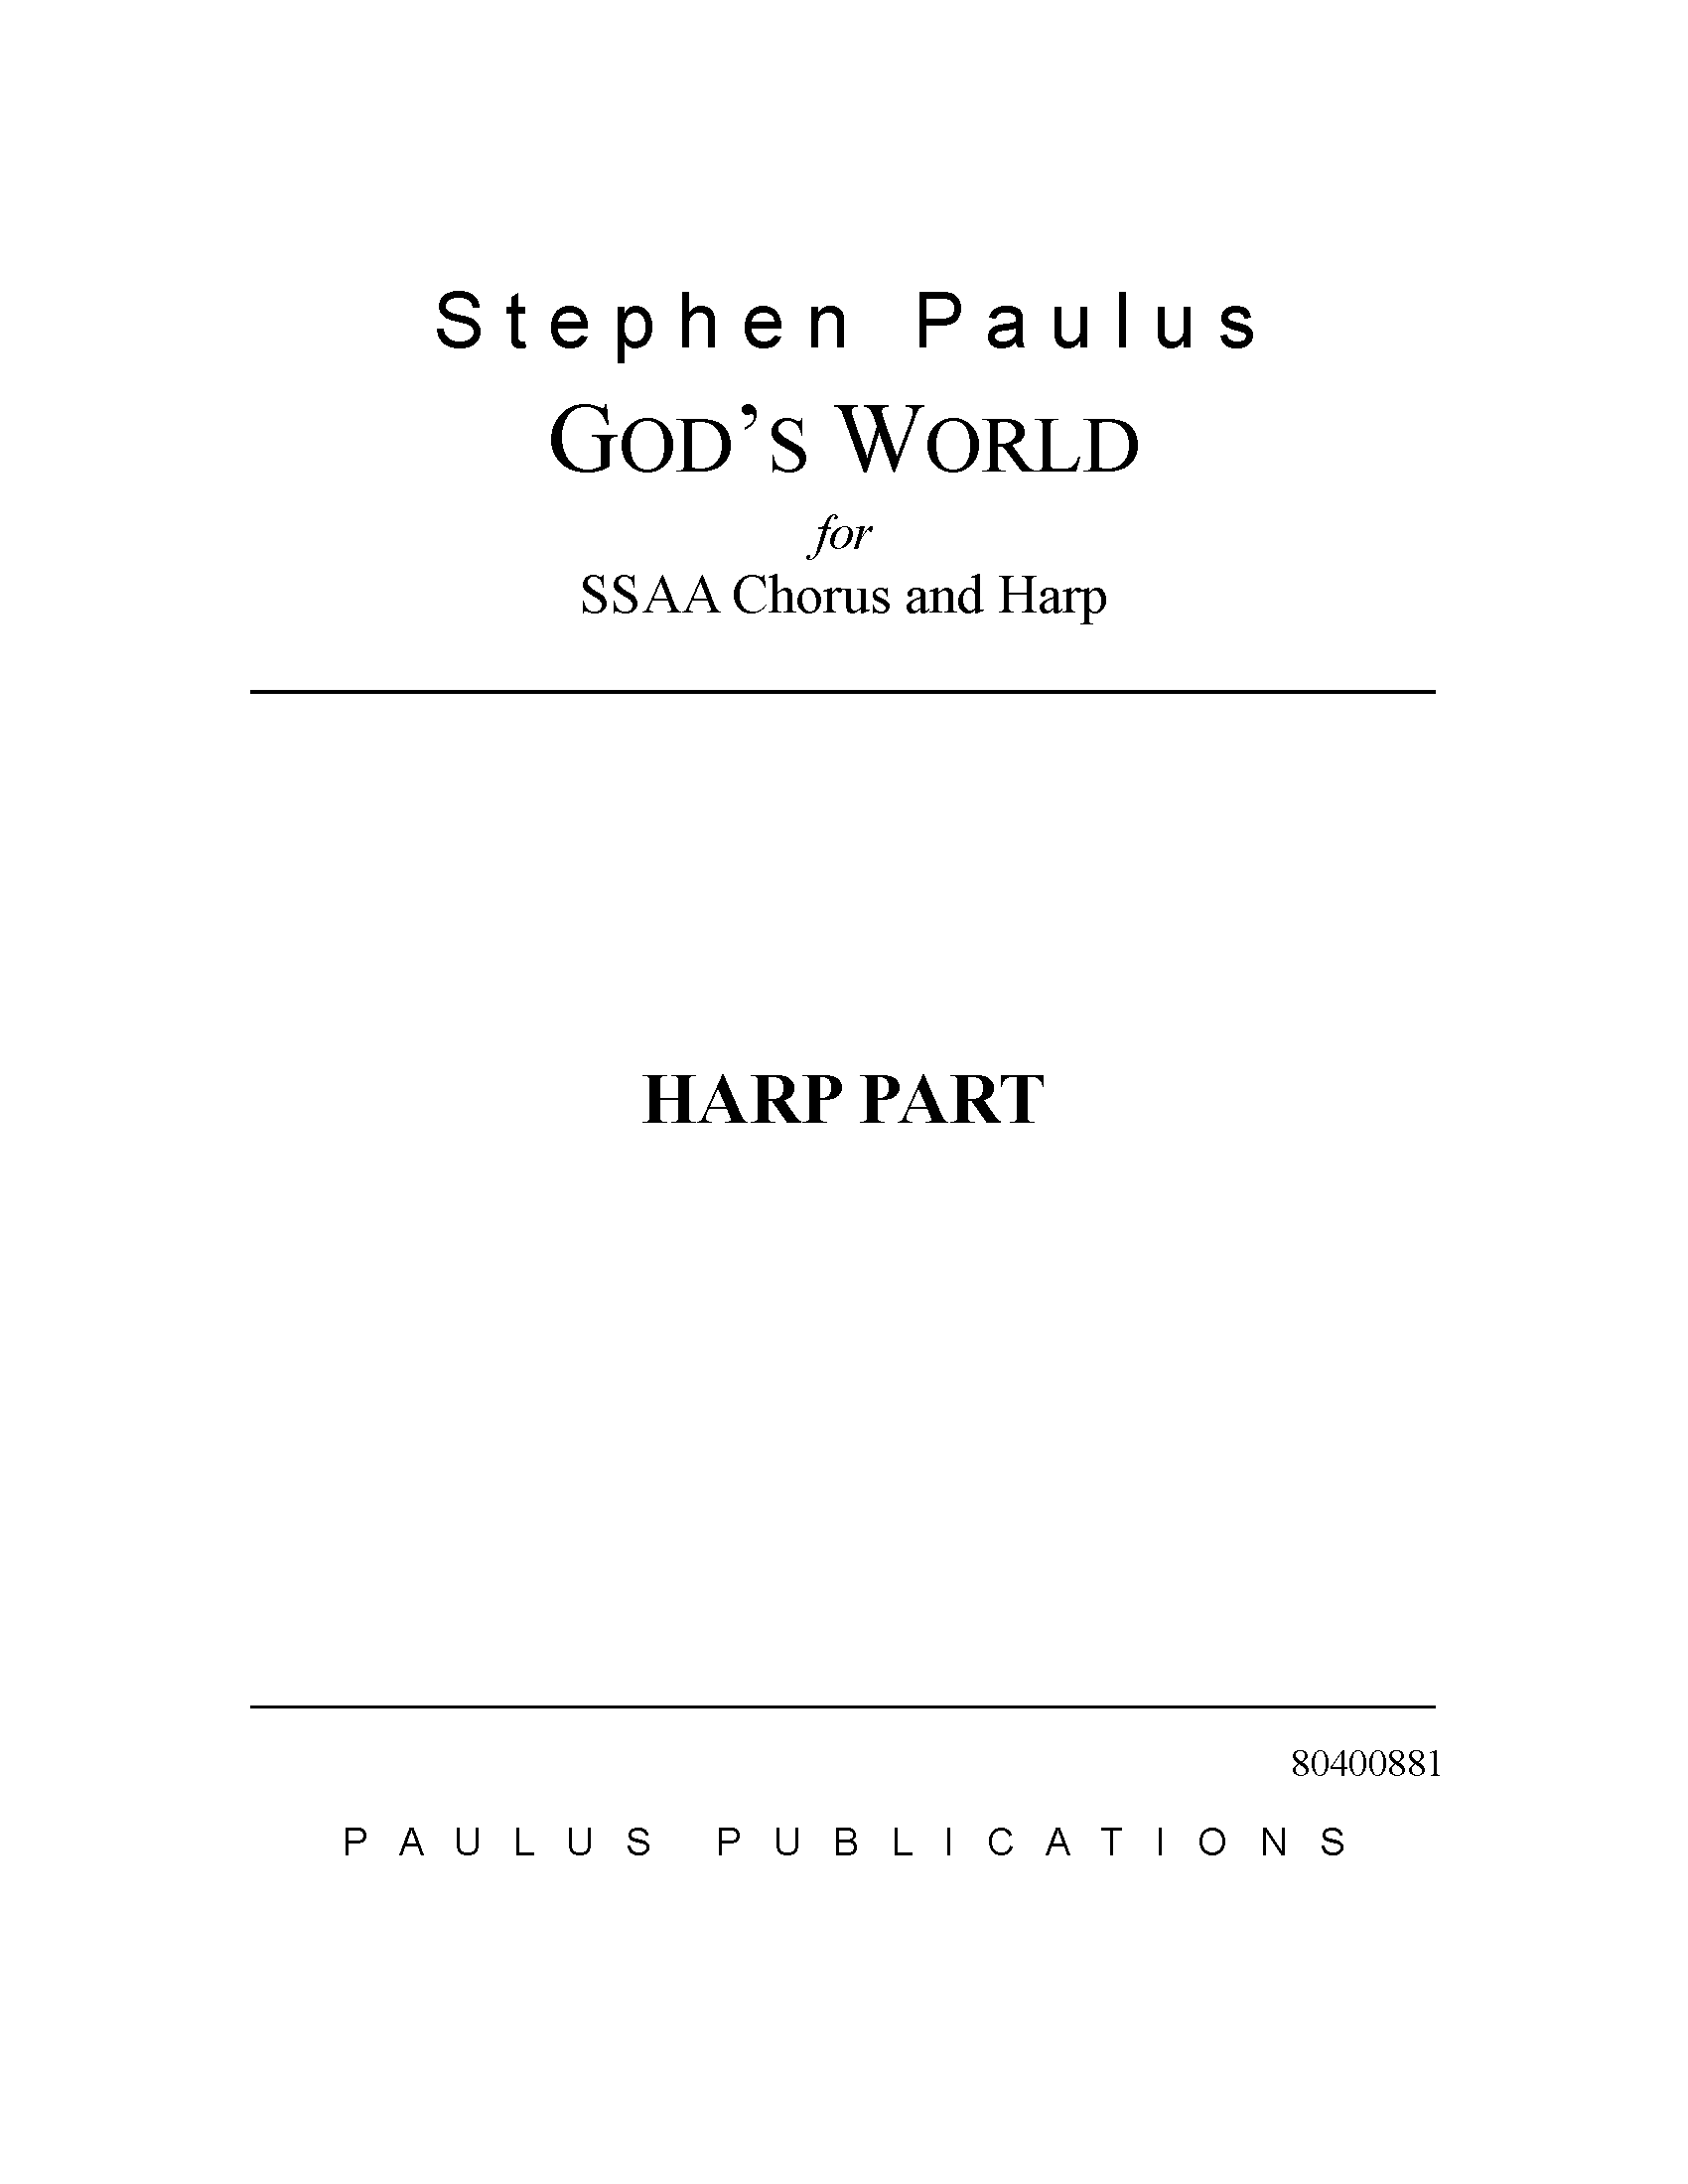 God's World (Harp part) for SSAA Chorus & Harp